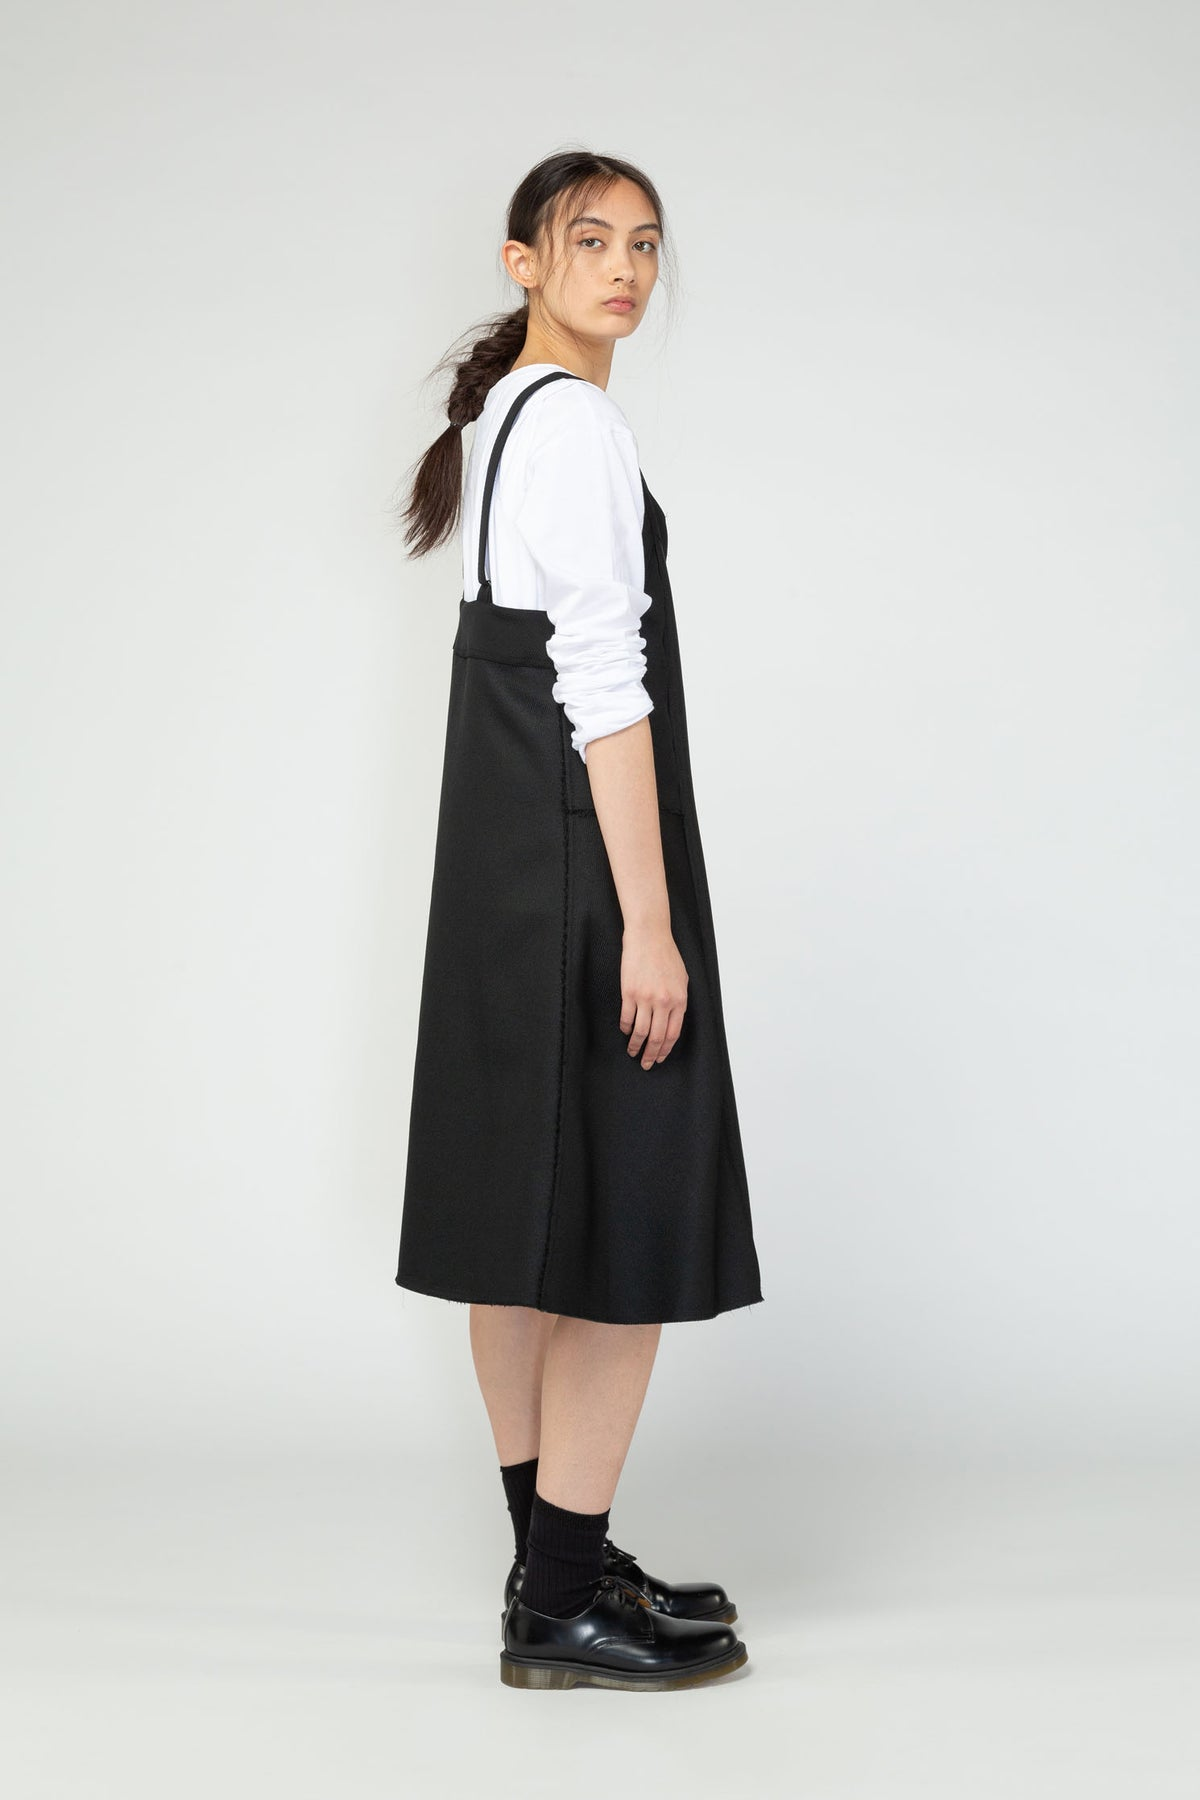 Turnover pinafore nom*d Black NZ made NZ designer clothing ethical fashion New season